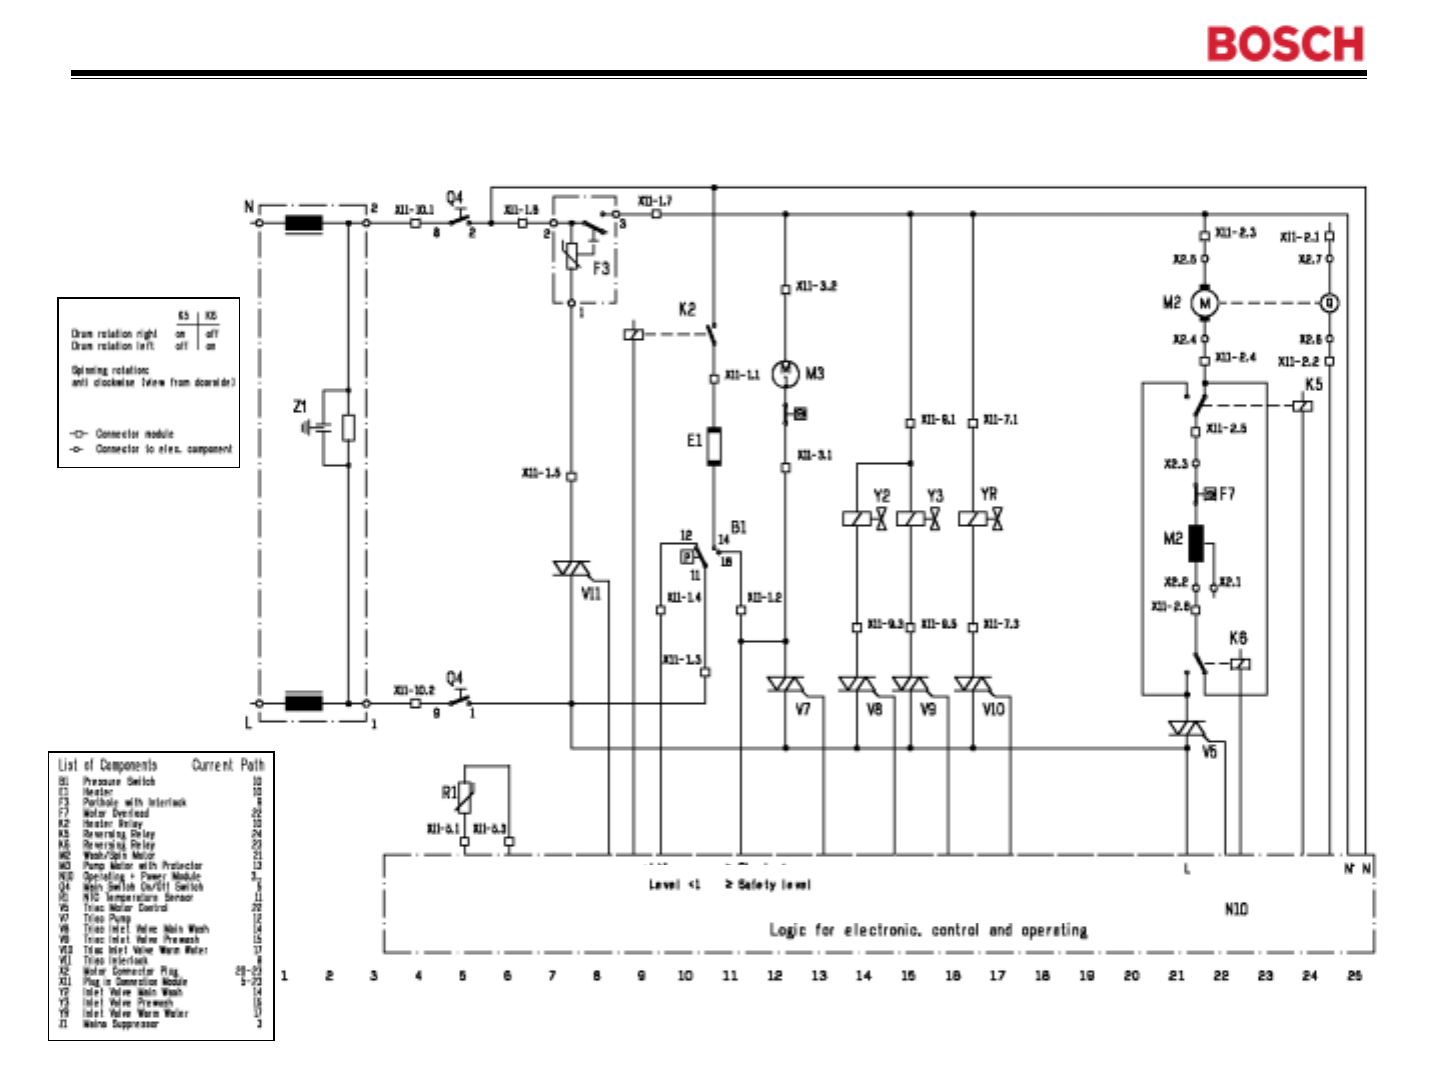 Bosch washer wiring diagram wiring diagrams schematics page 37 of bosch appliances washer wfr2460uc user guide wfl 2060uc circuit diagram at lg washer wiring diagram swarovskicordoba Gallery